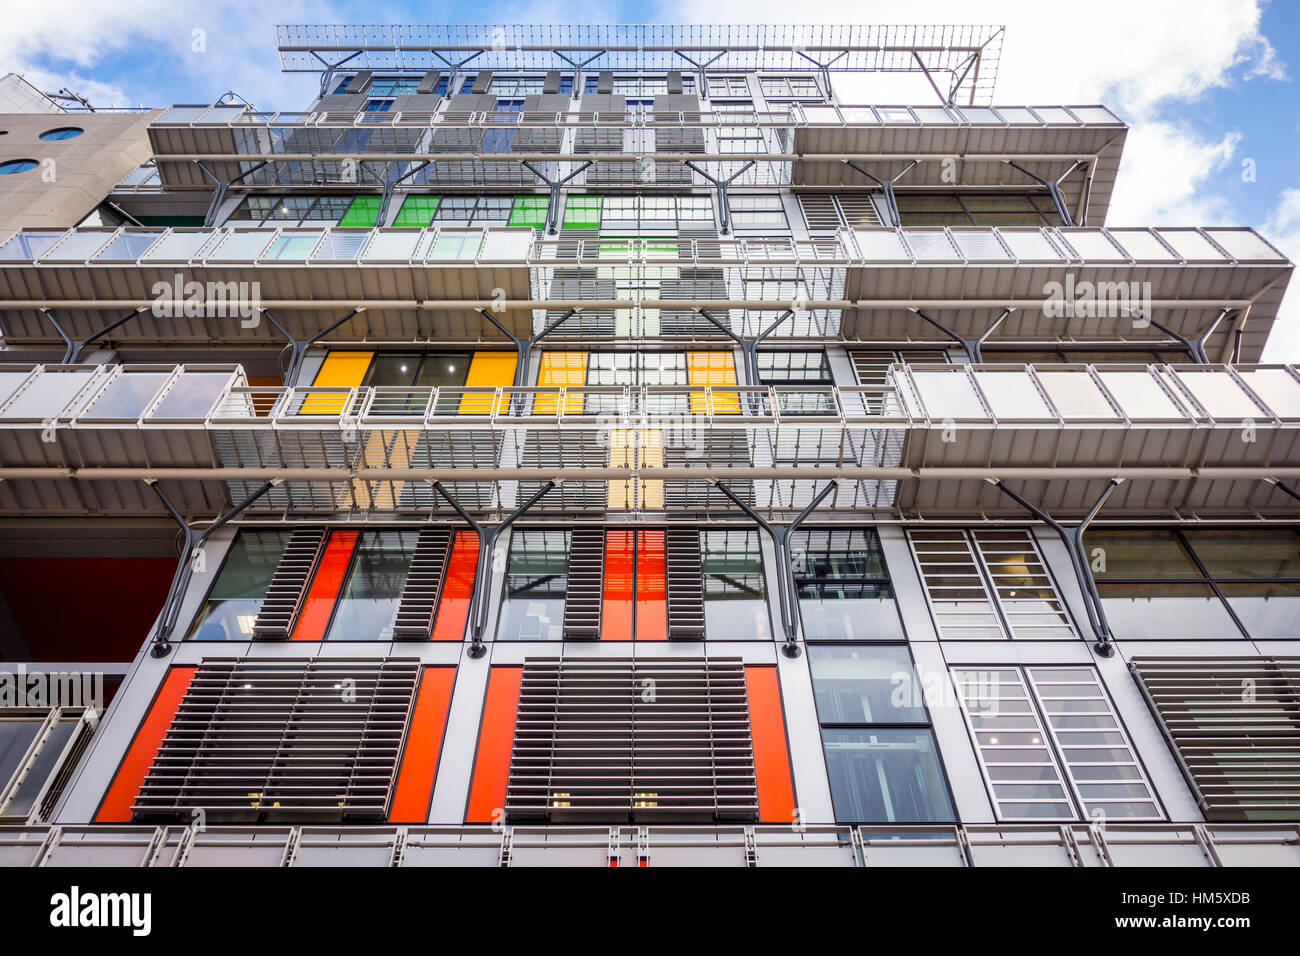 Guy's Cancer Centre building, Guy's and St Thomas' Hospital, London, UK - Stock Image